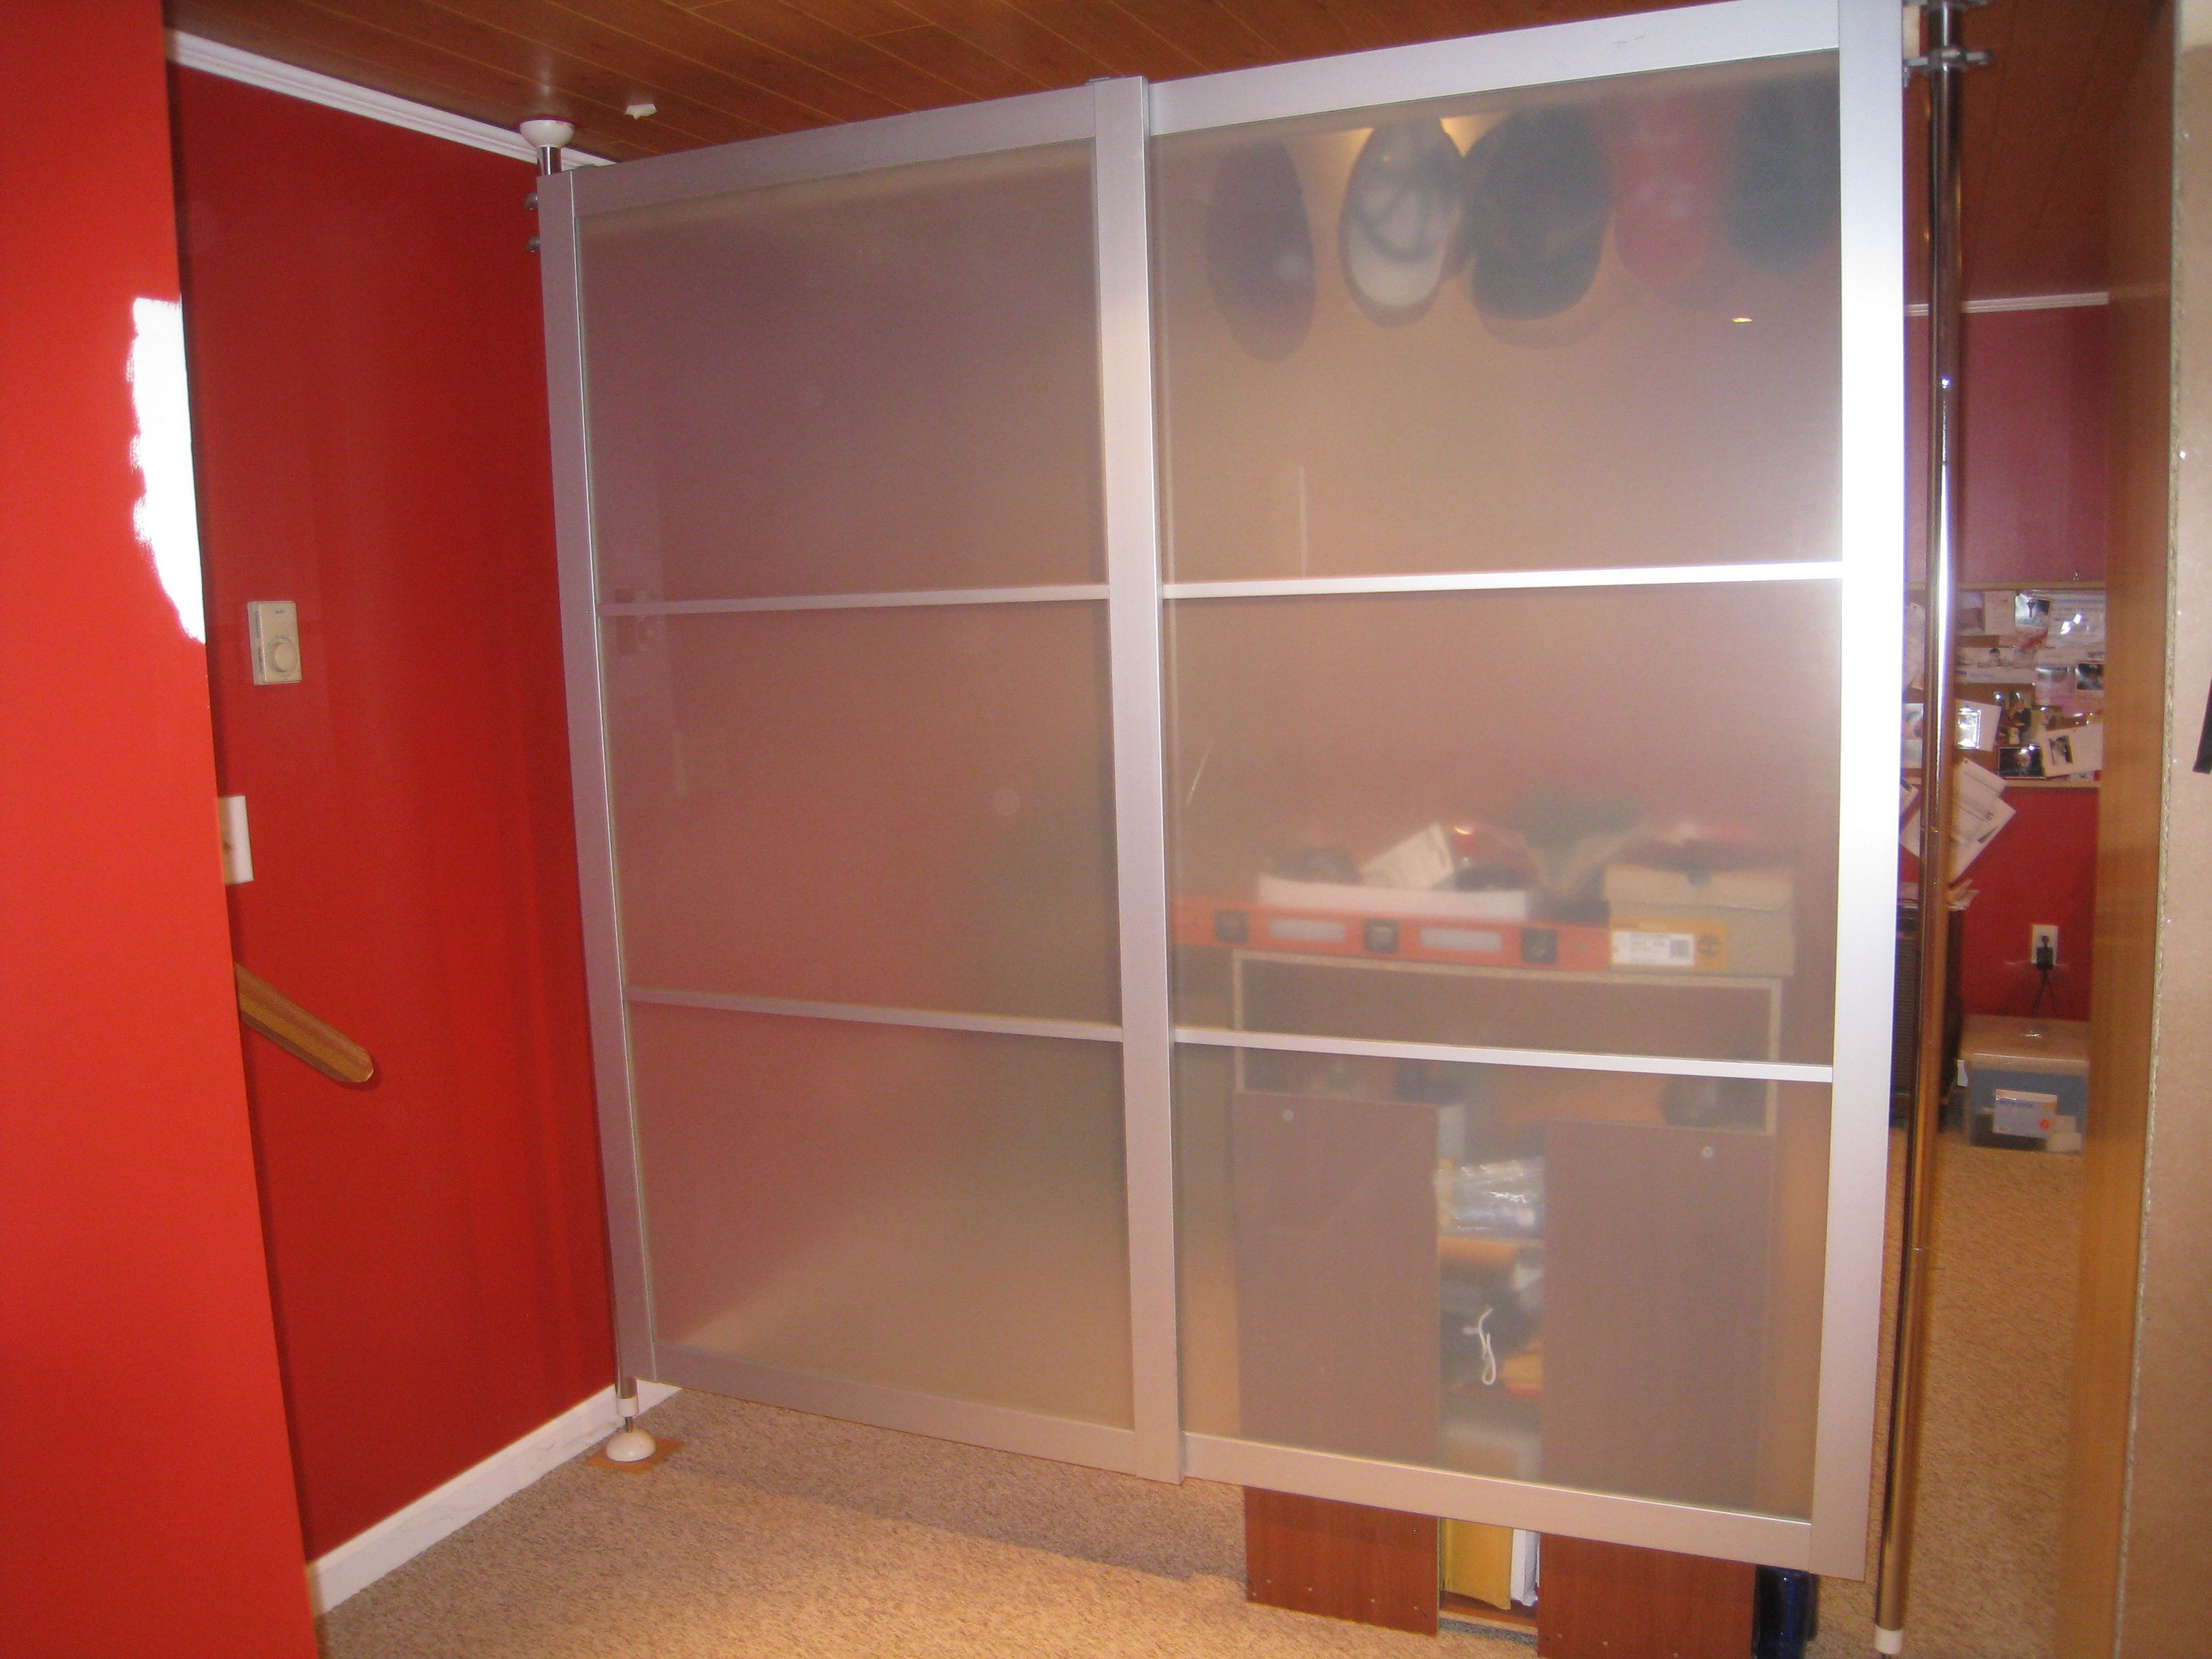 Ikea Hack Really Cool Wall Partition (Pics included)